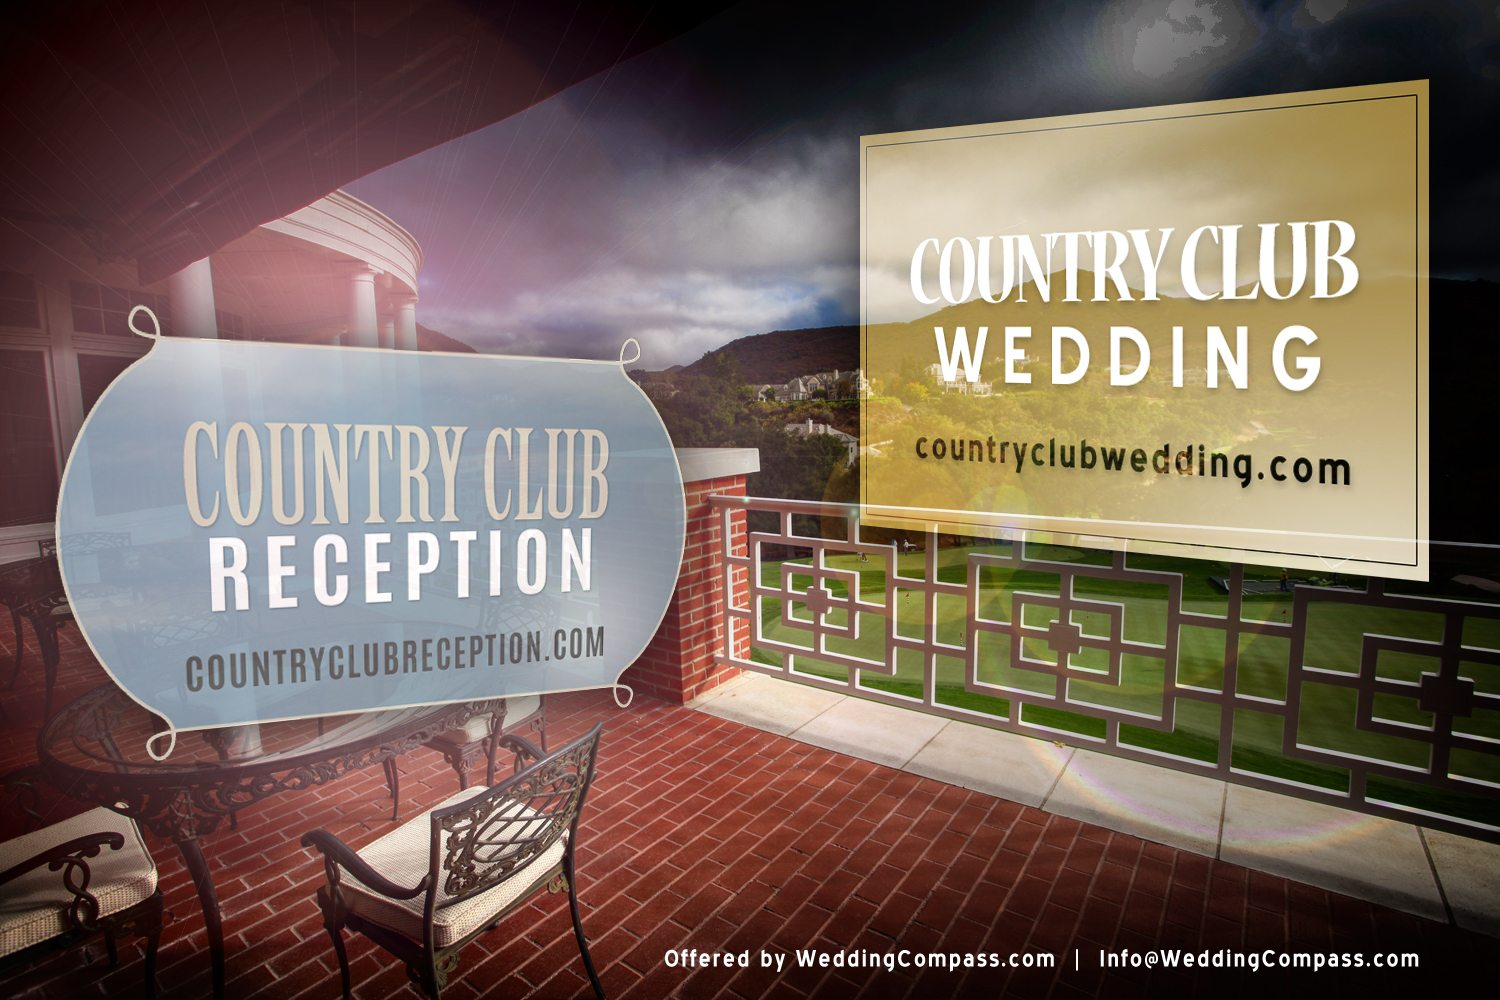 CountryClubWedding.com | CountryClubReception.com